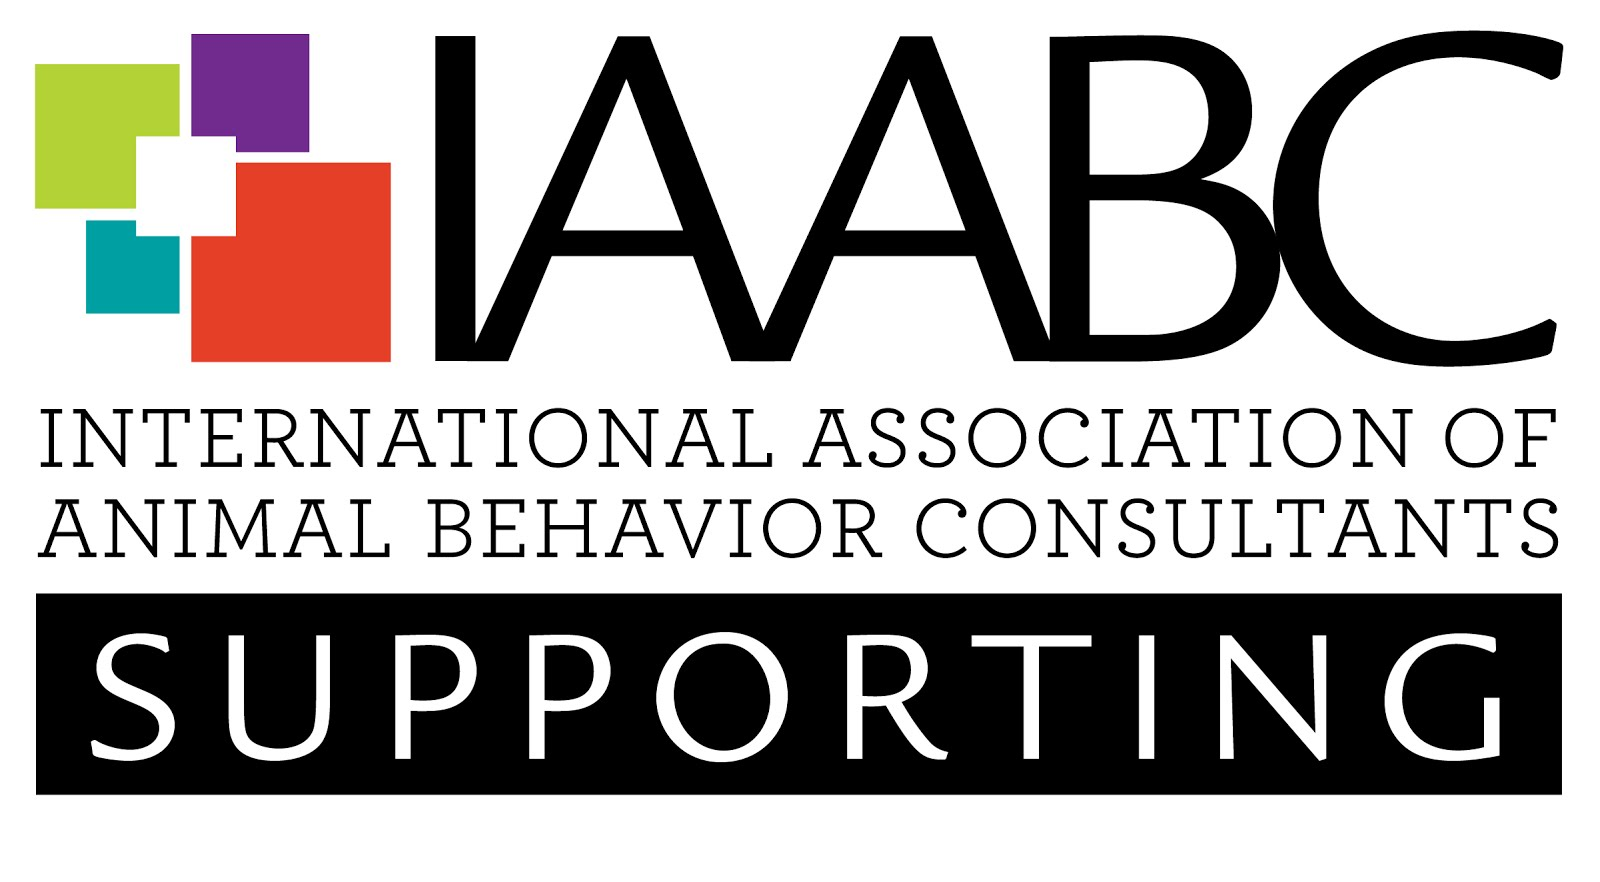 Supporting member IAABC